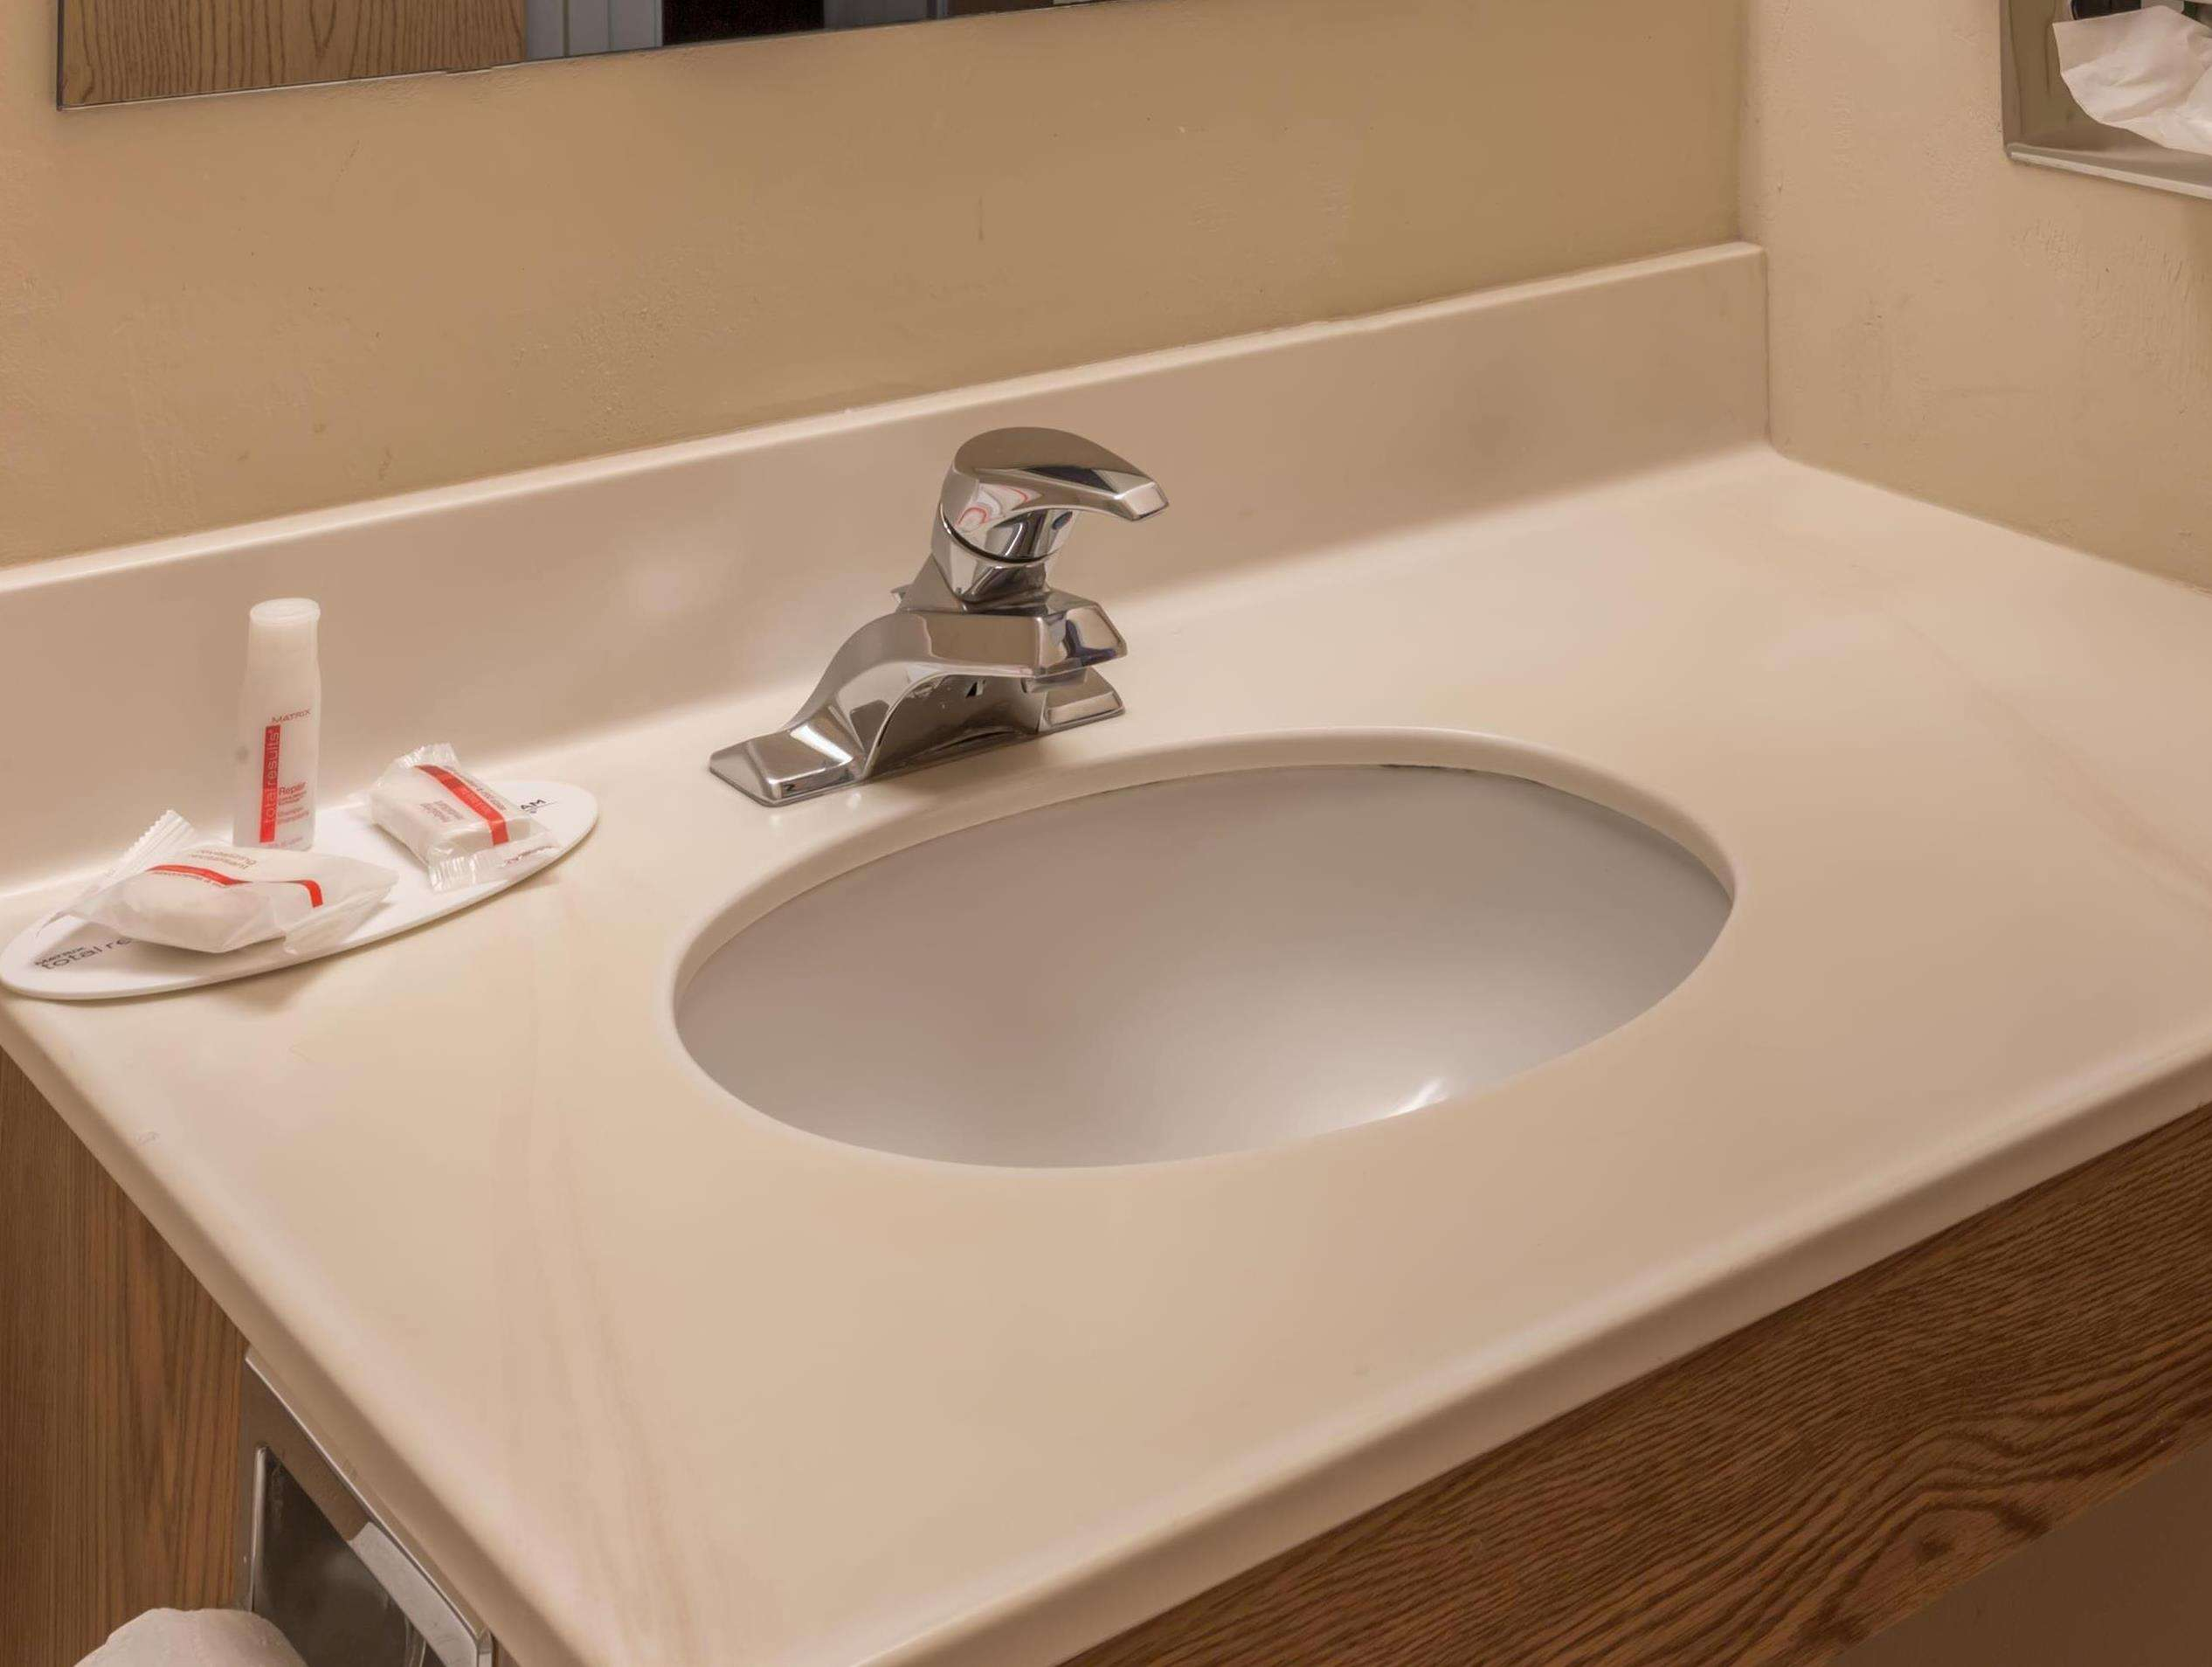 Artificial Stone Bathroom Vanity top with Integrated Backsplash and Basin